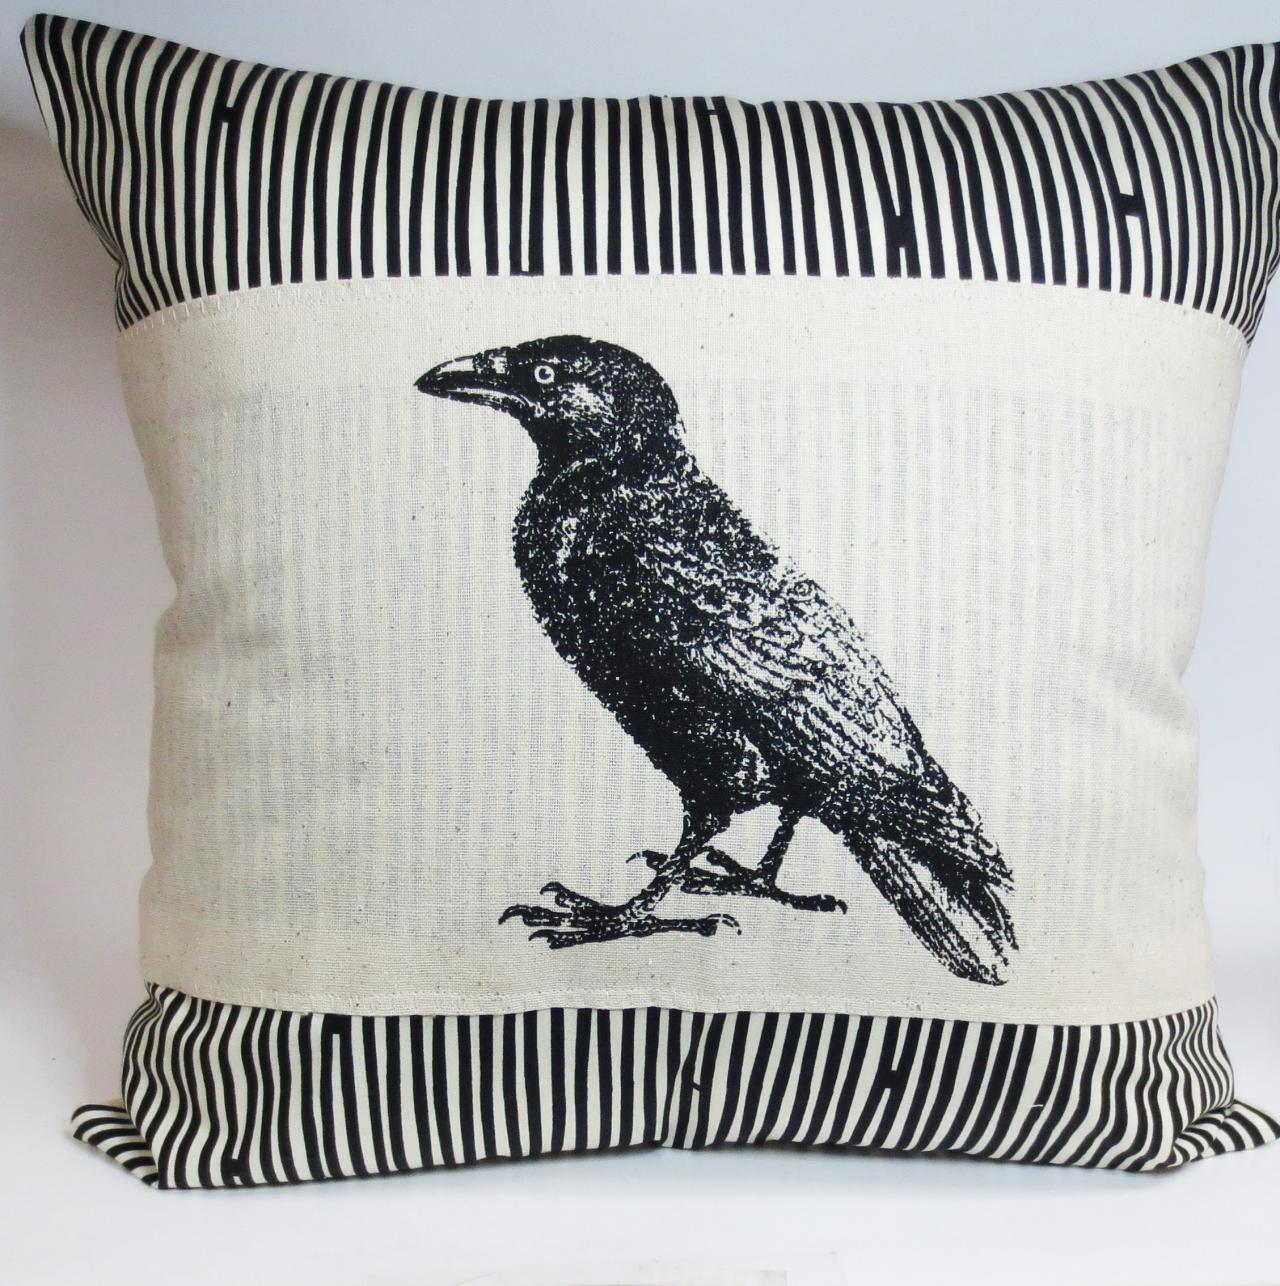 Pillow Cover with Raven or Crow Screen Print